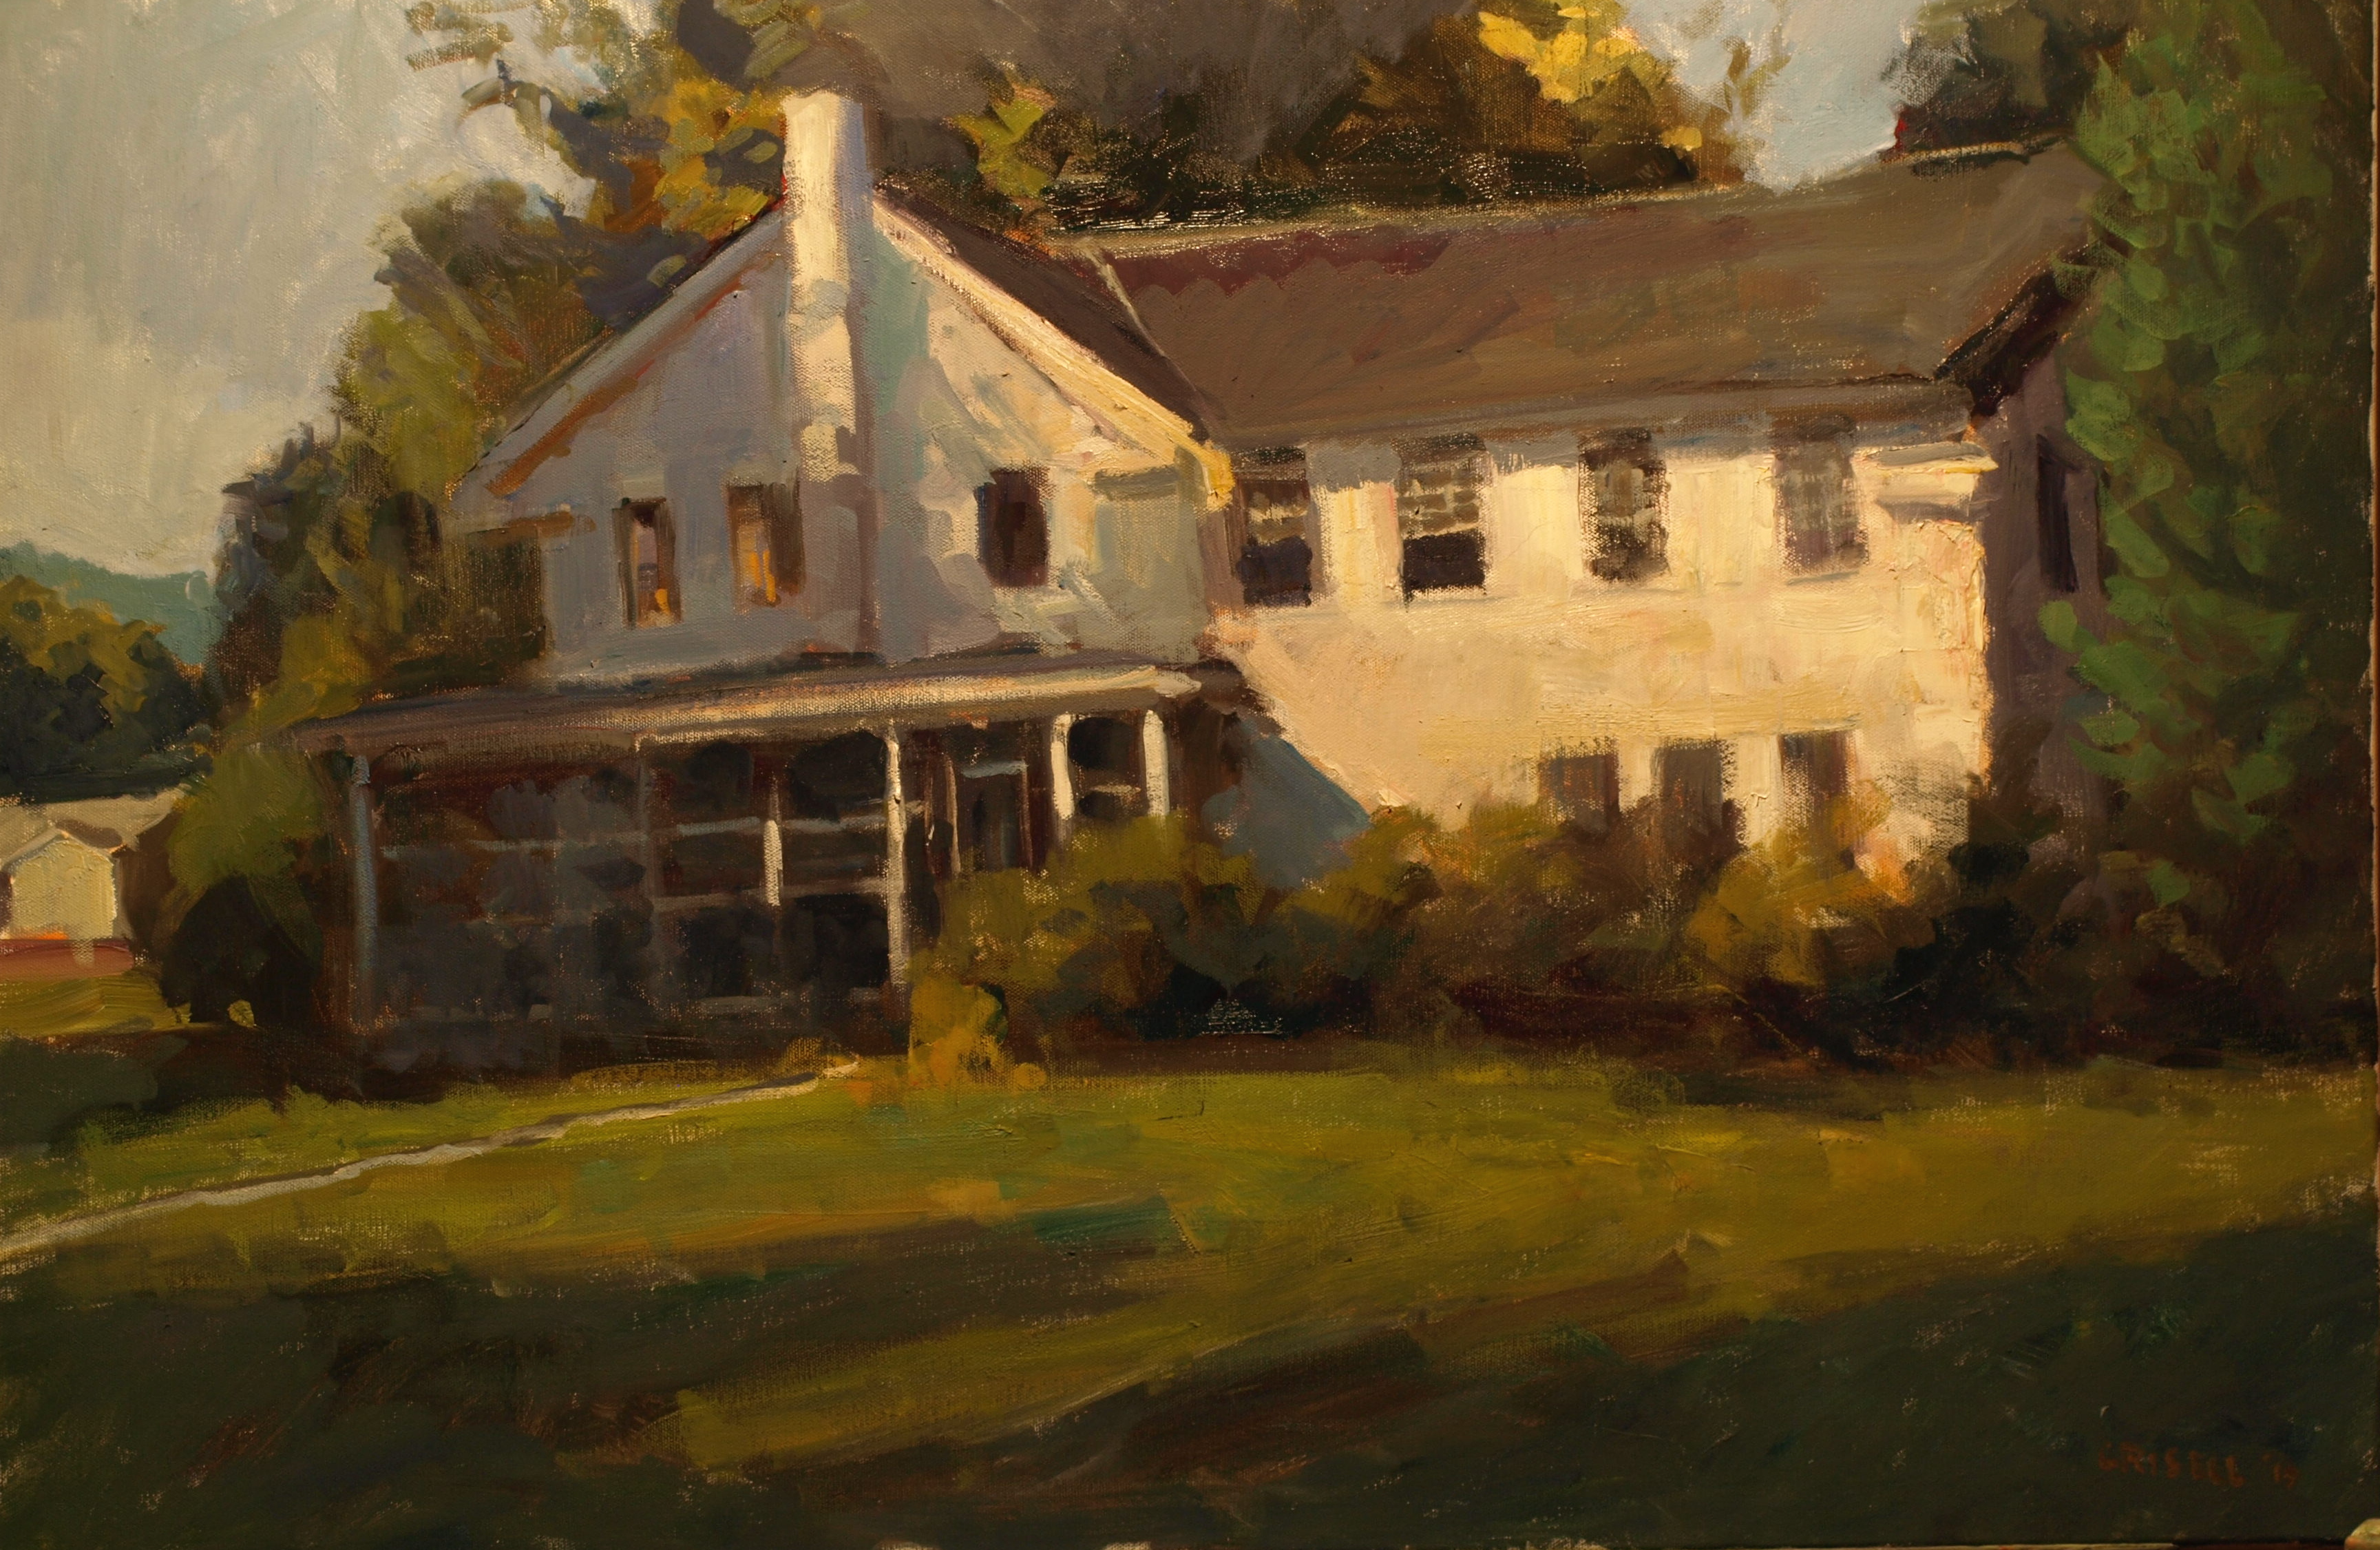 Farmhouse, Oil on Canvas, 24 x 36 Inches, by Susan Grisell, $1500